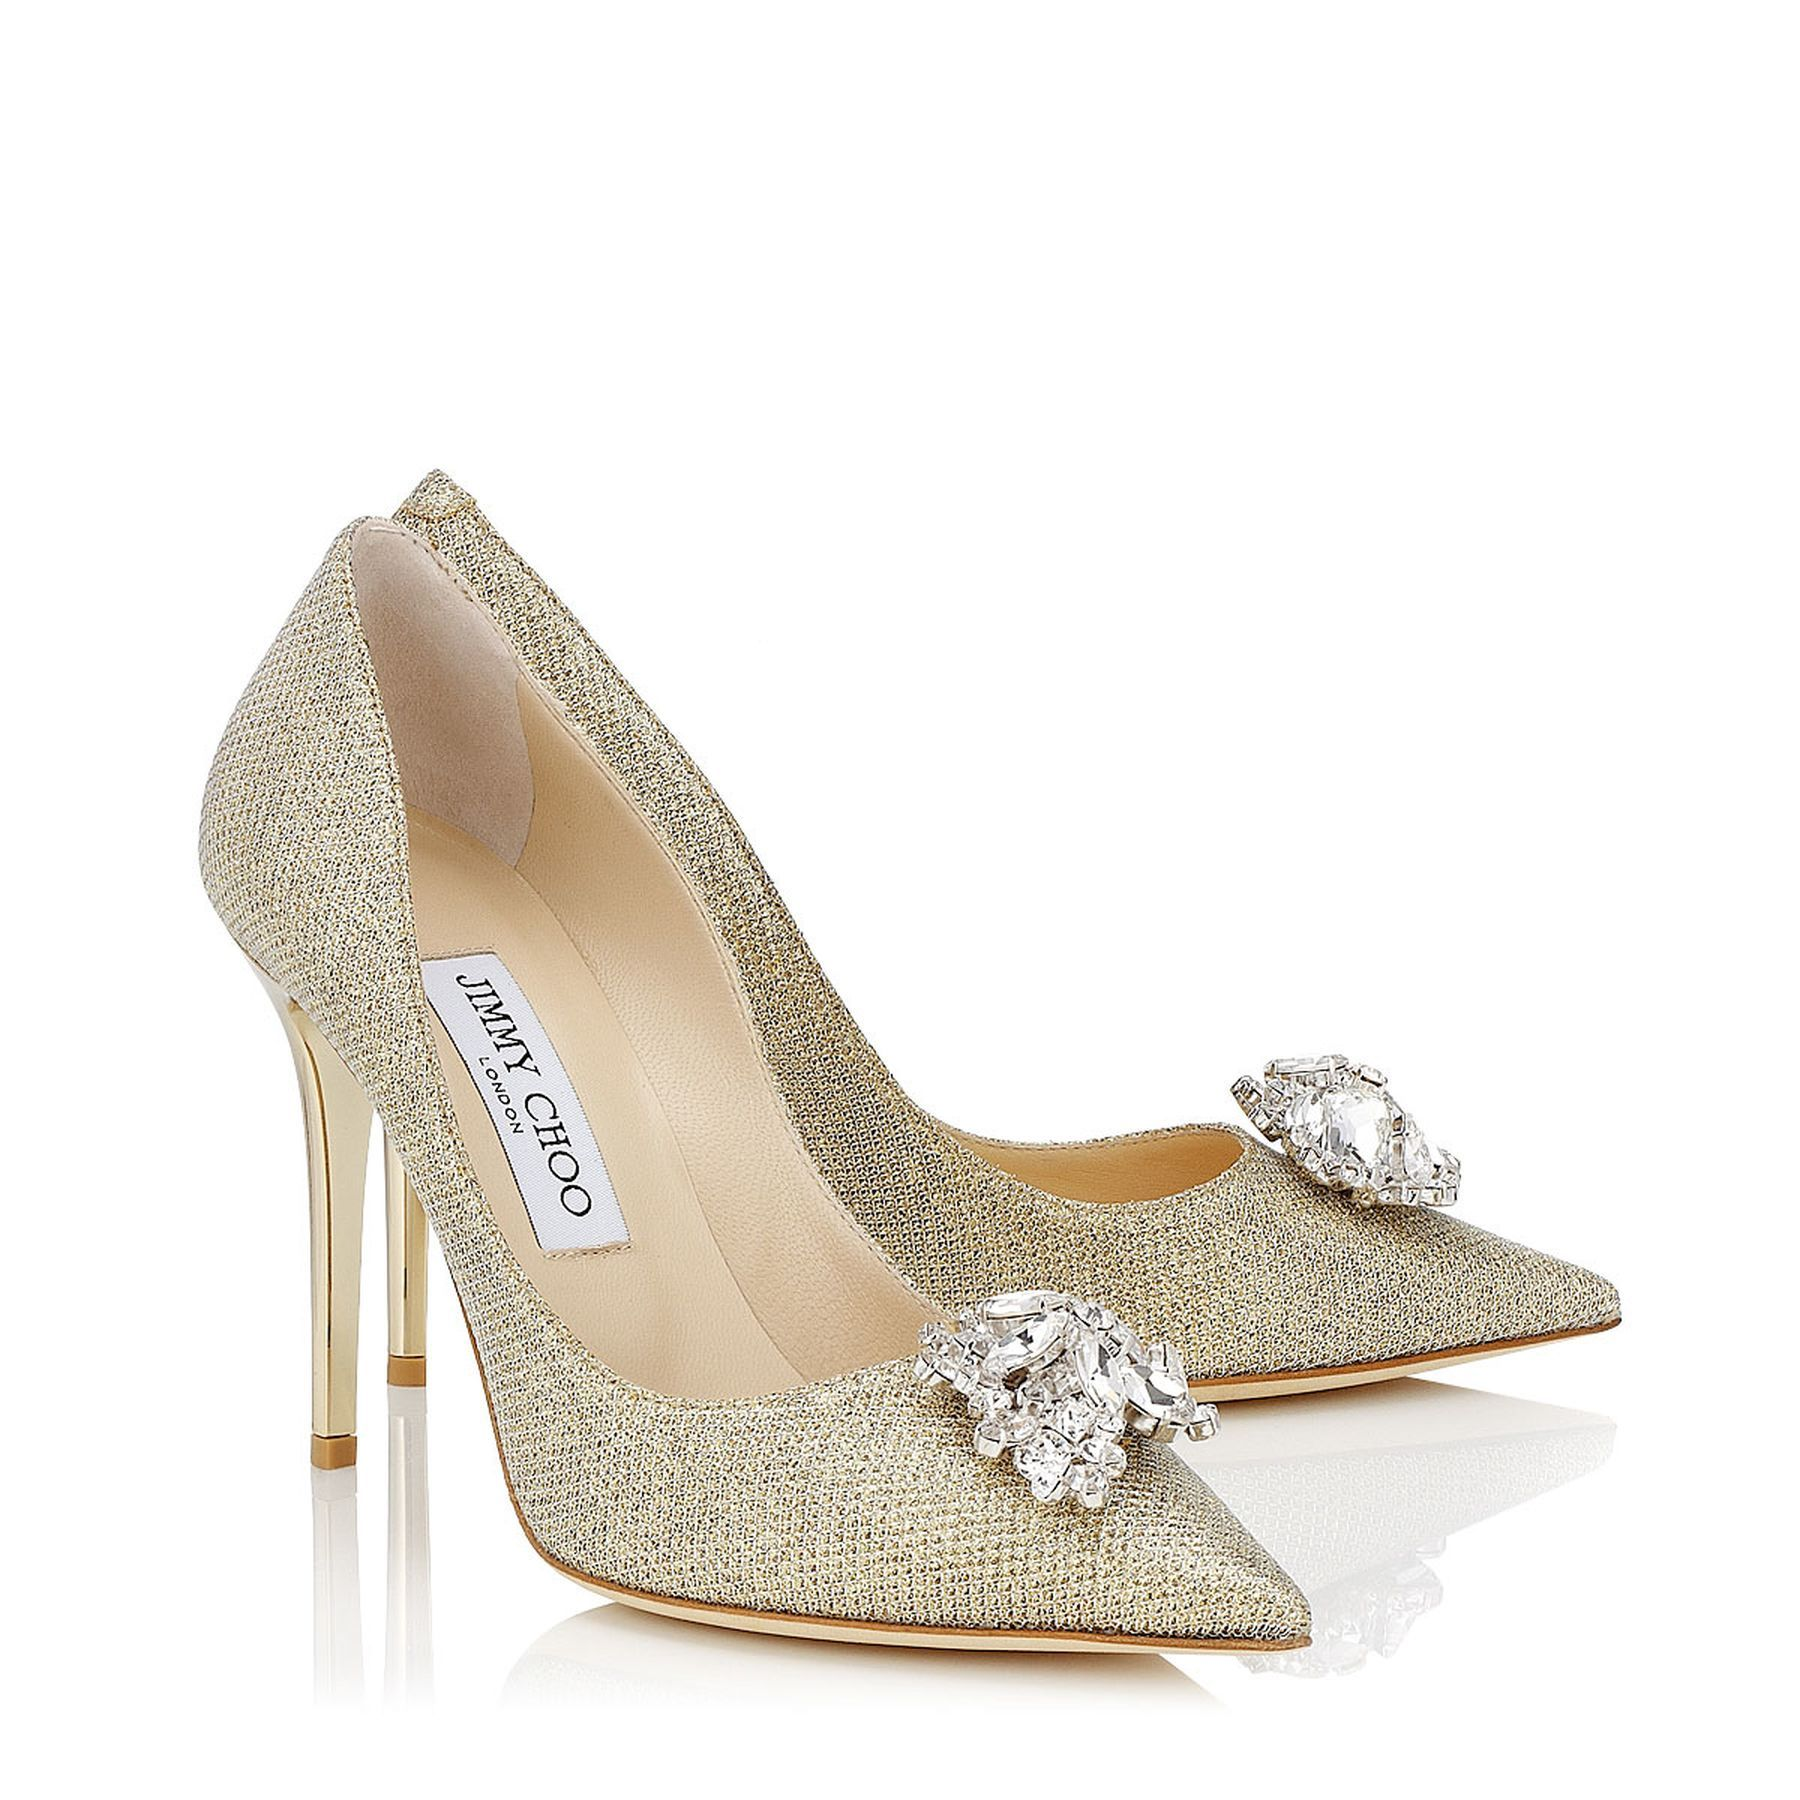 Anthracite Lame Glitter Pumps With Crystal Detail Manda Cruise 15 Jimmy Choo Wedding Shoes Jimmy Choo Heels Celebrity Shoes